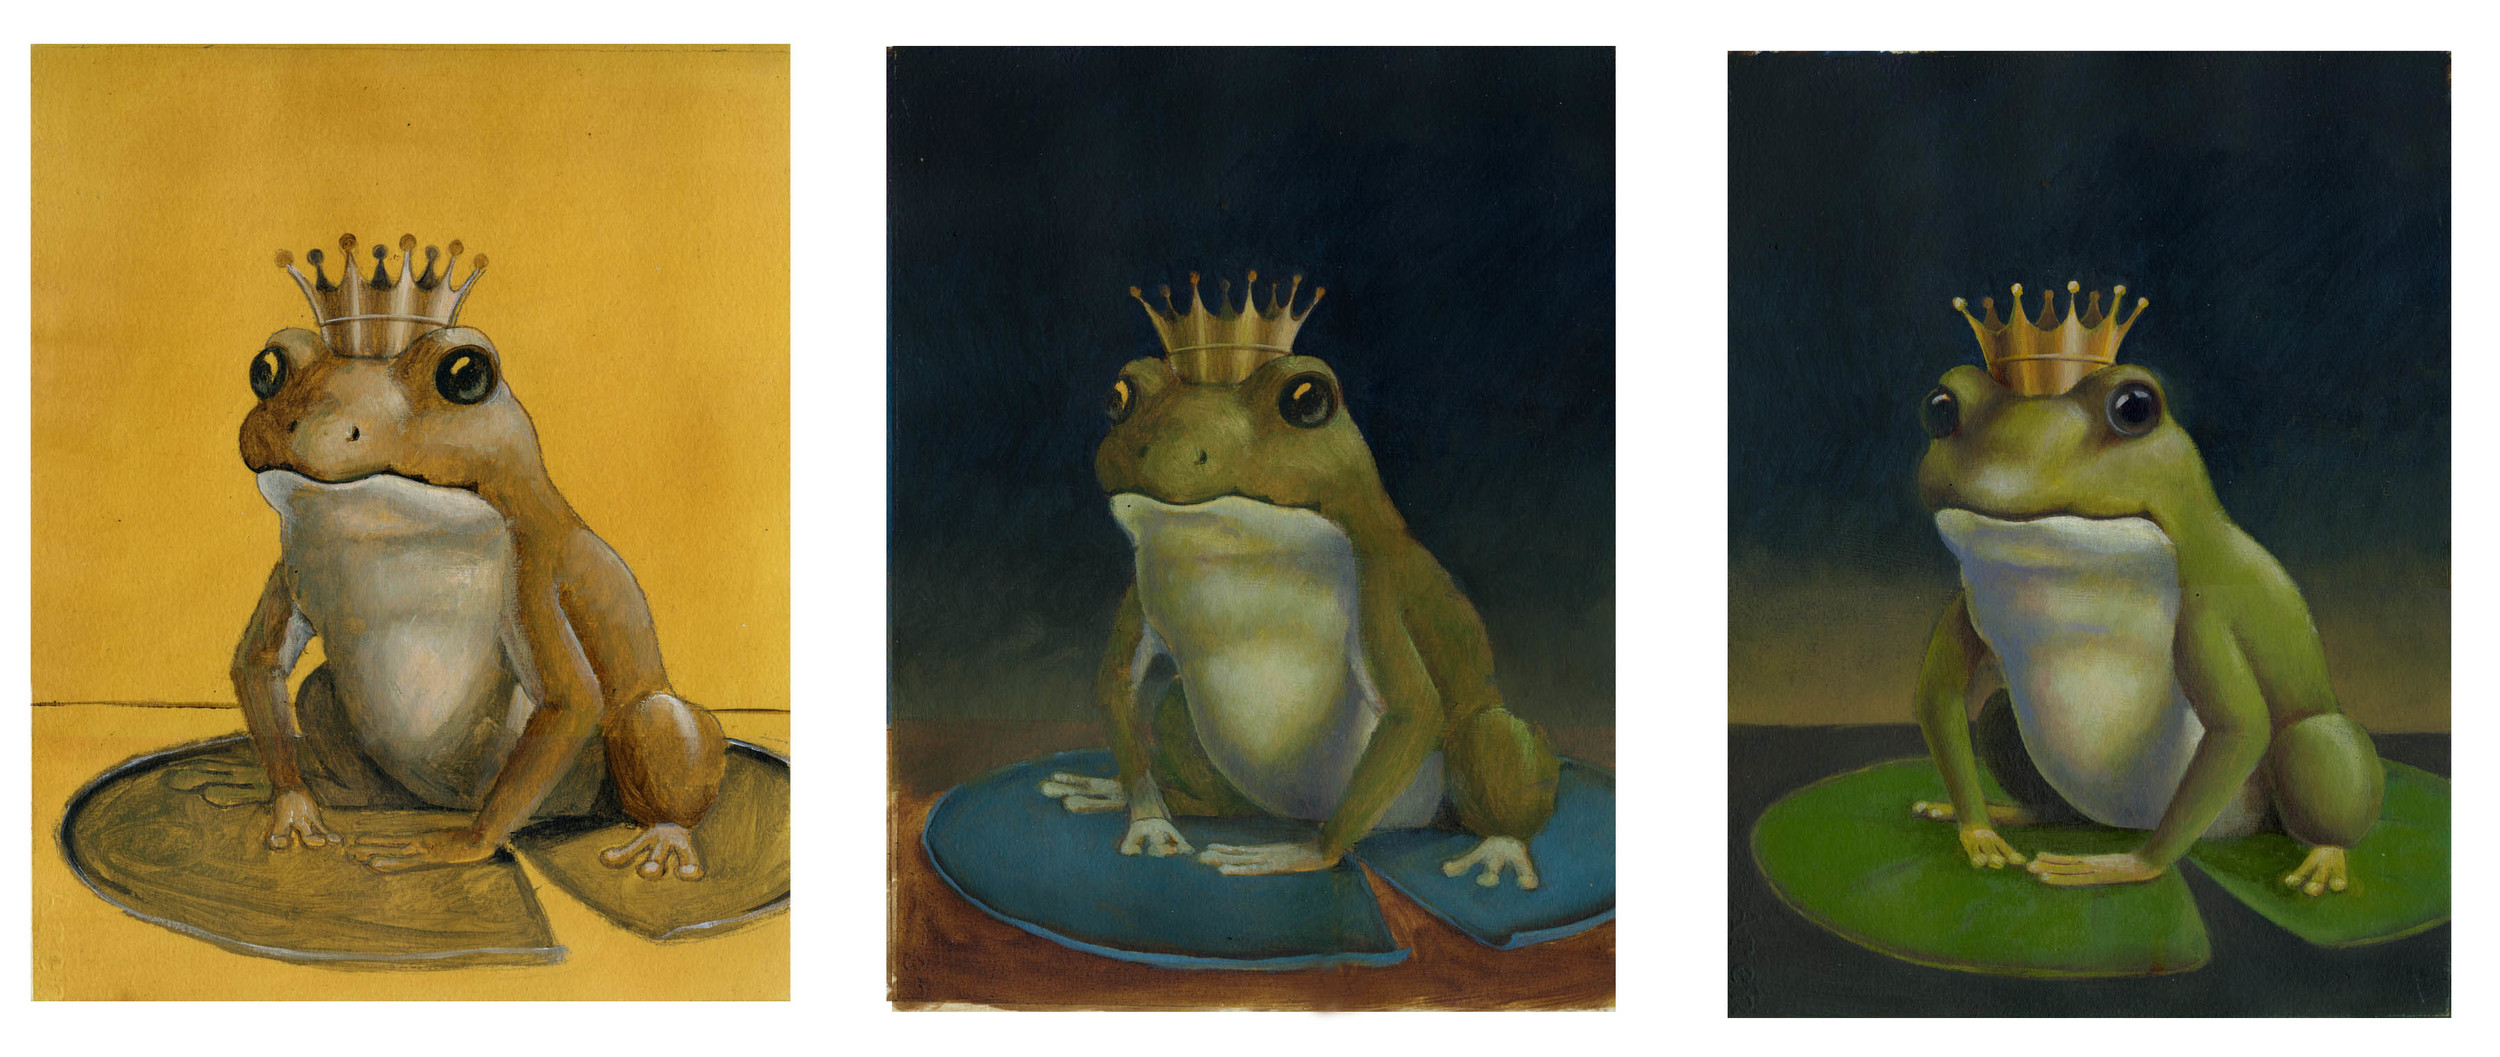 The Frog Prince stages of painting